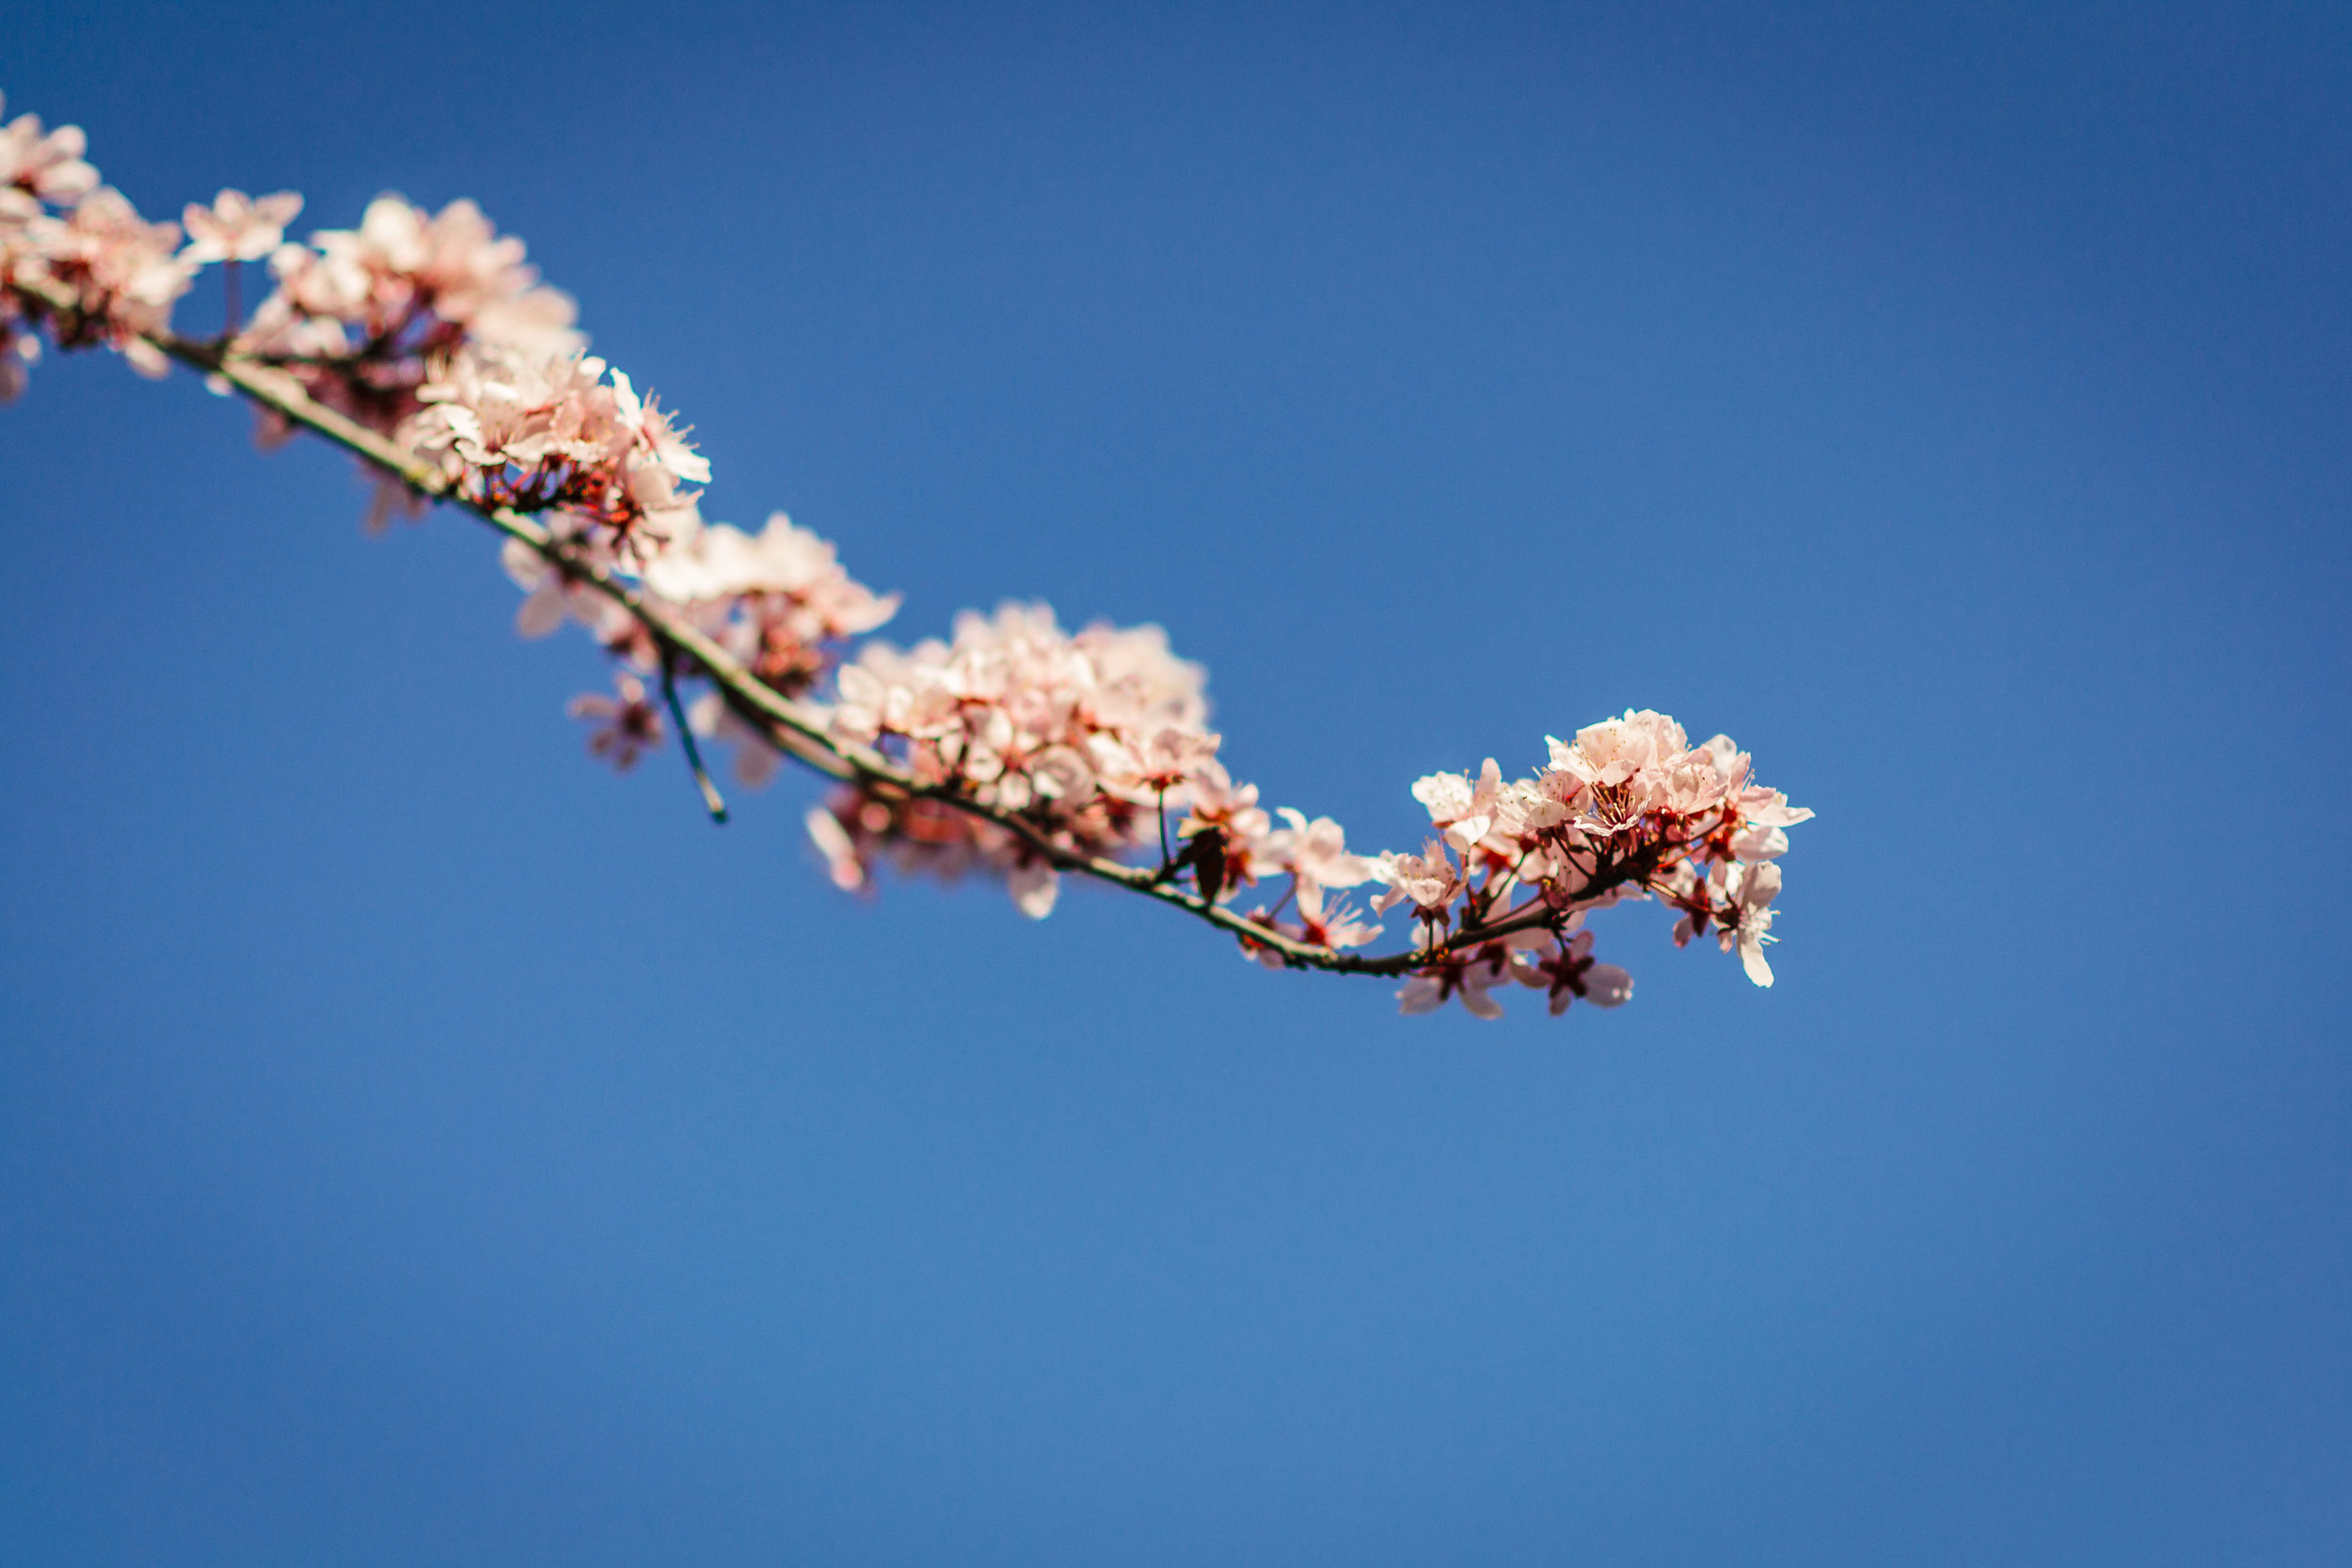 Nice depth of field and that perfect blue sky, though the depth of field was too shallow